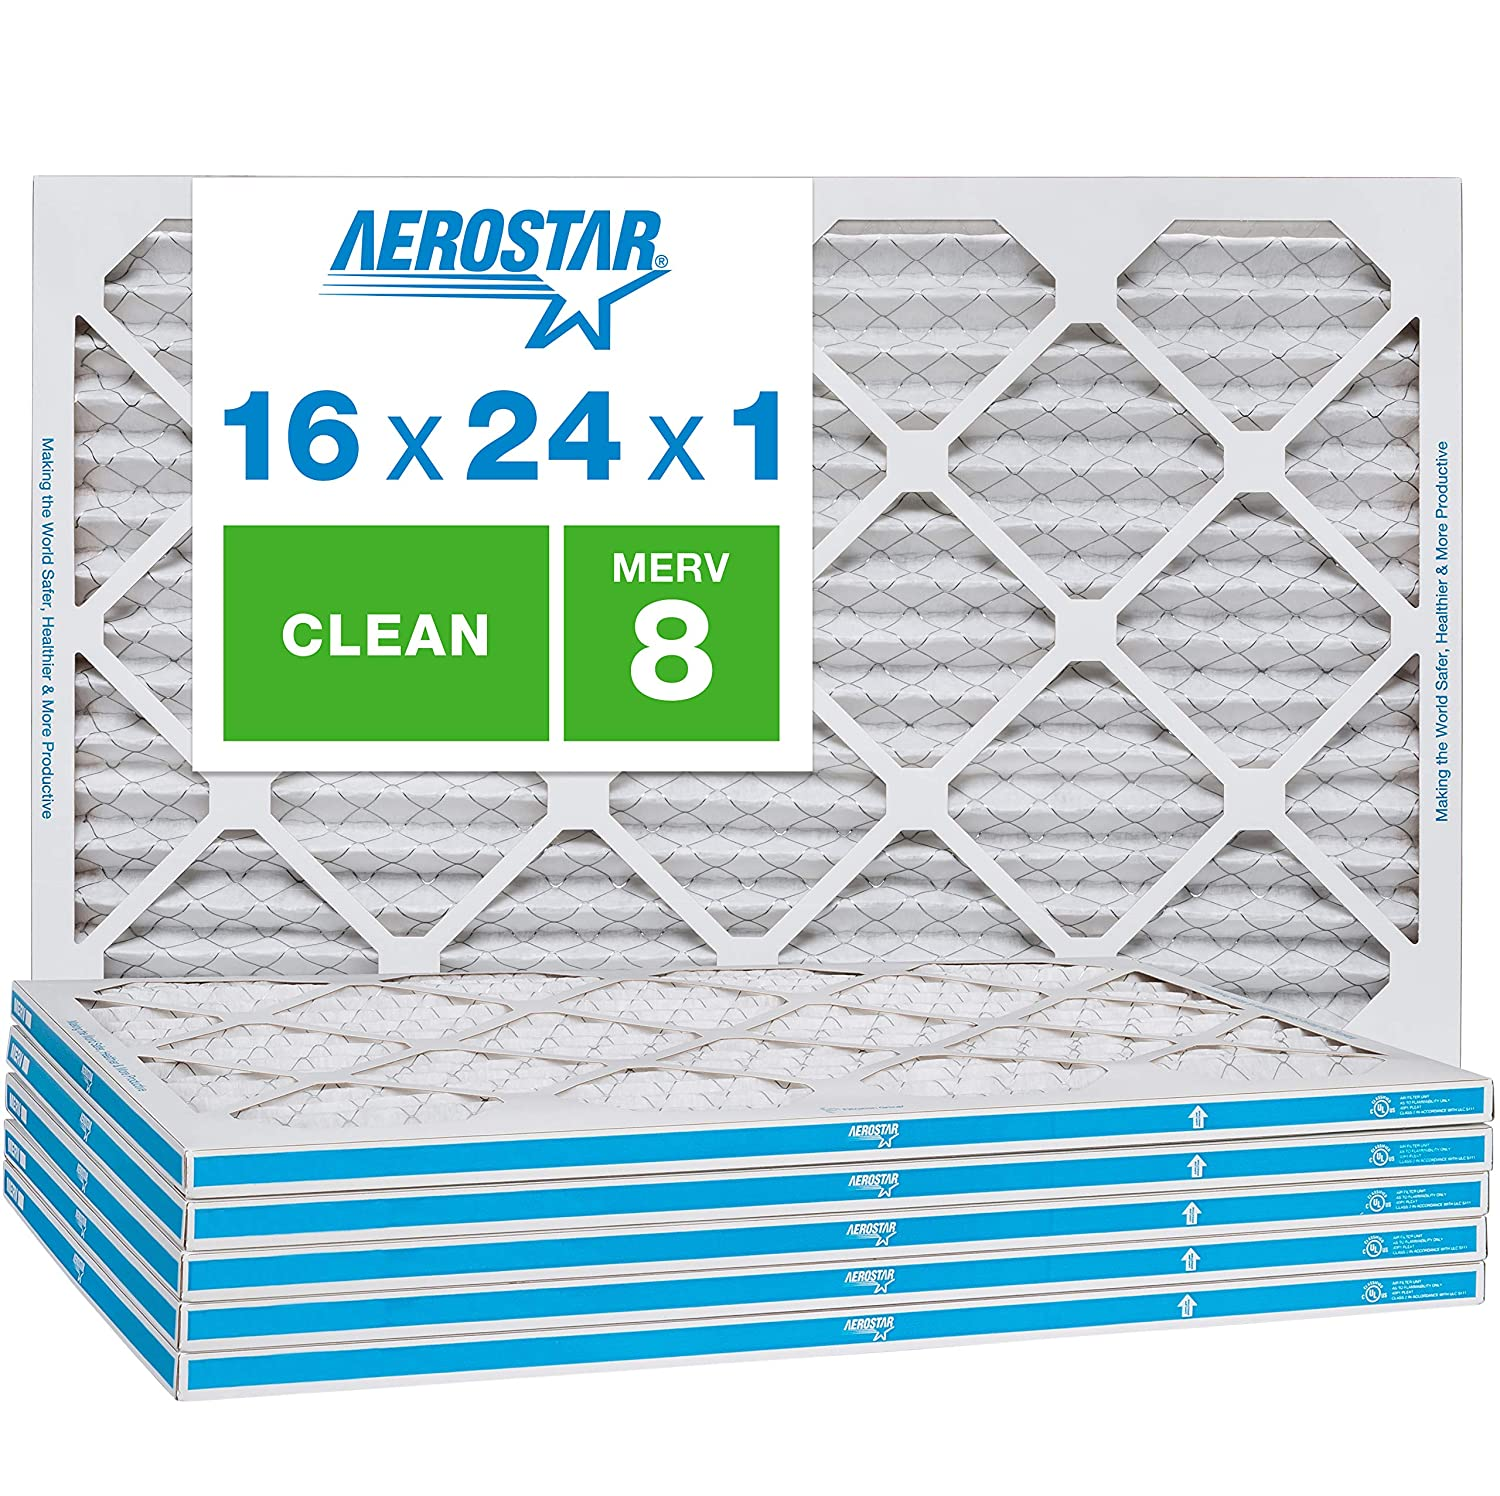 Aerostar Clean House 16x24x1 MERV 8 Pleated Air Filter, Made in the USA, 6-Pack